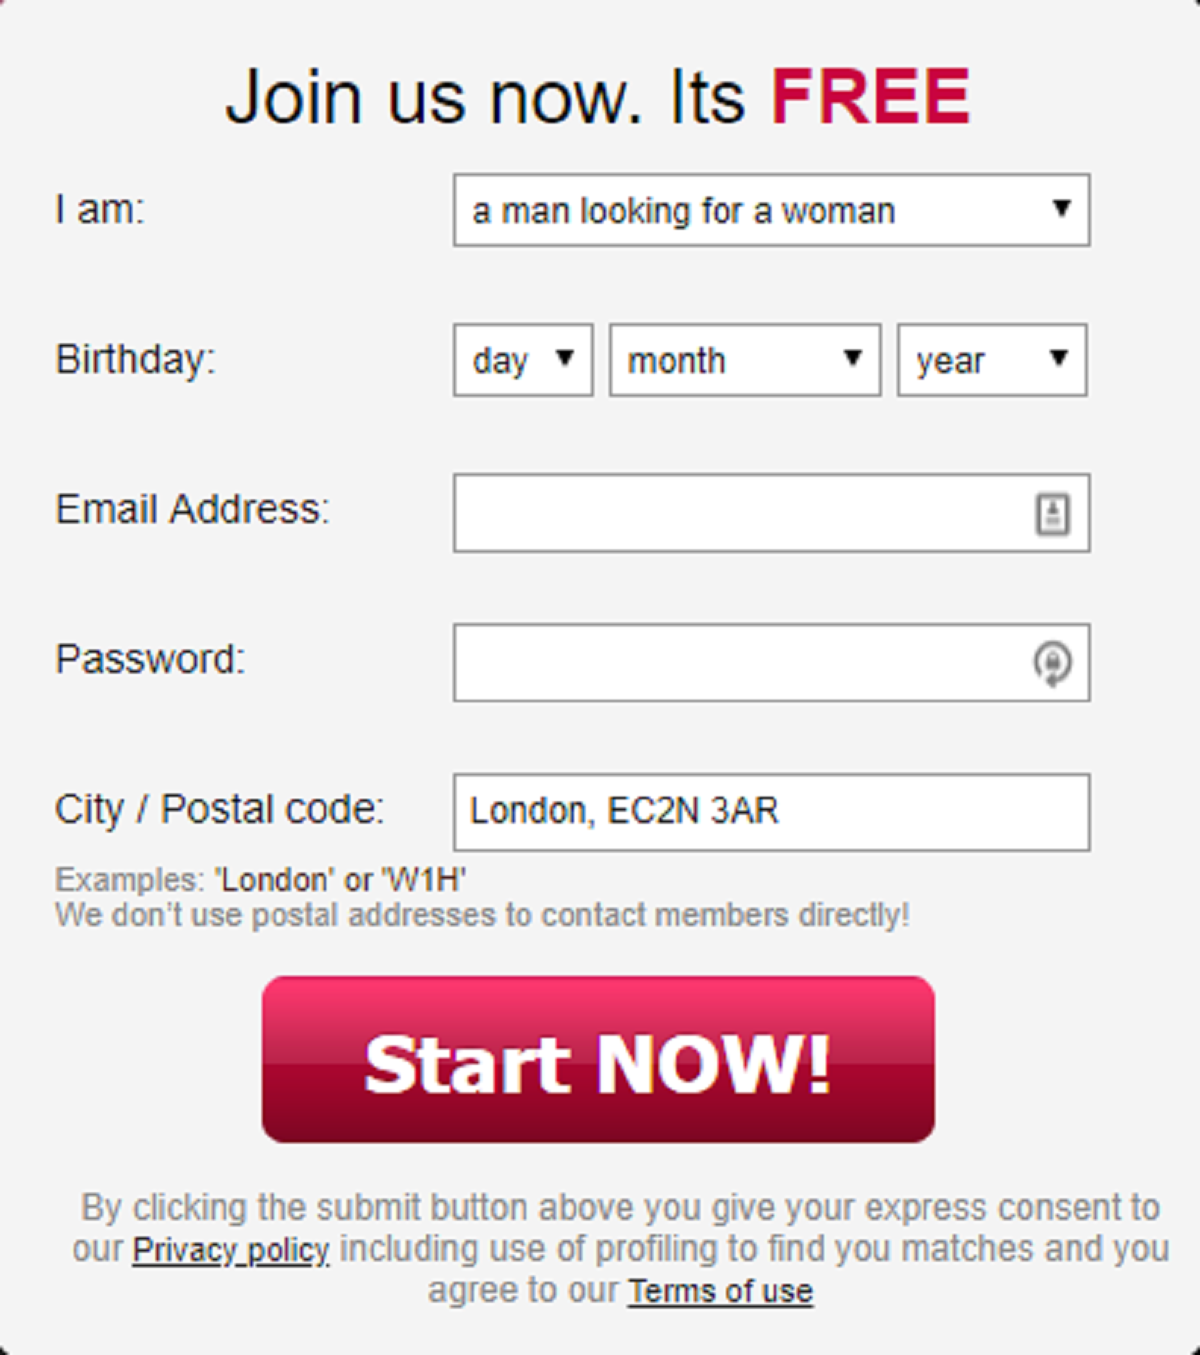 find a date of birth for free in the uk